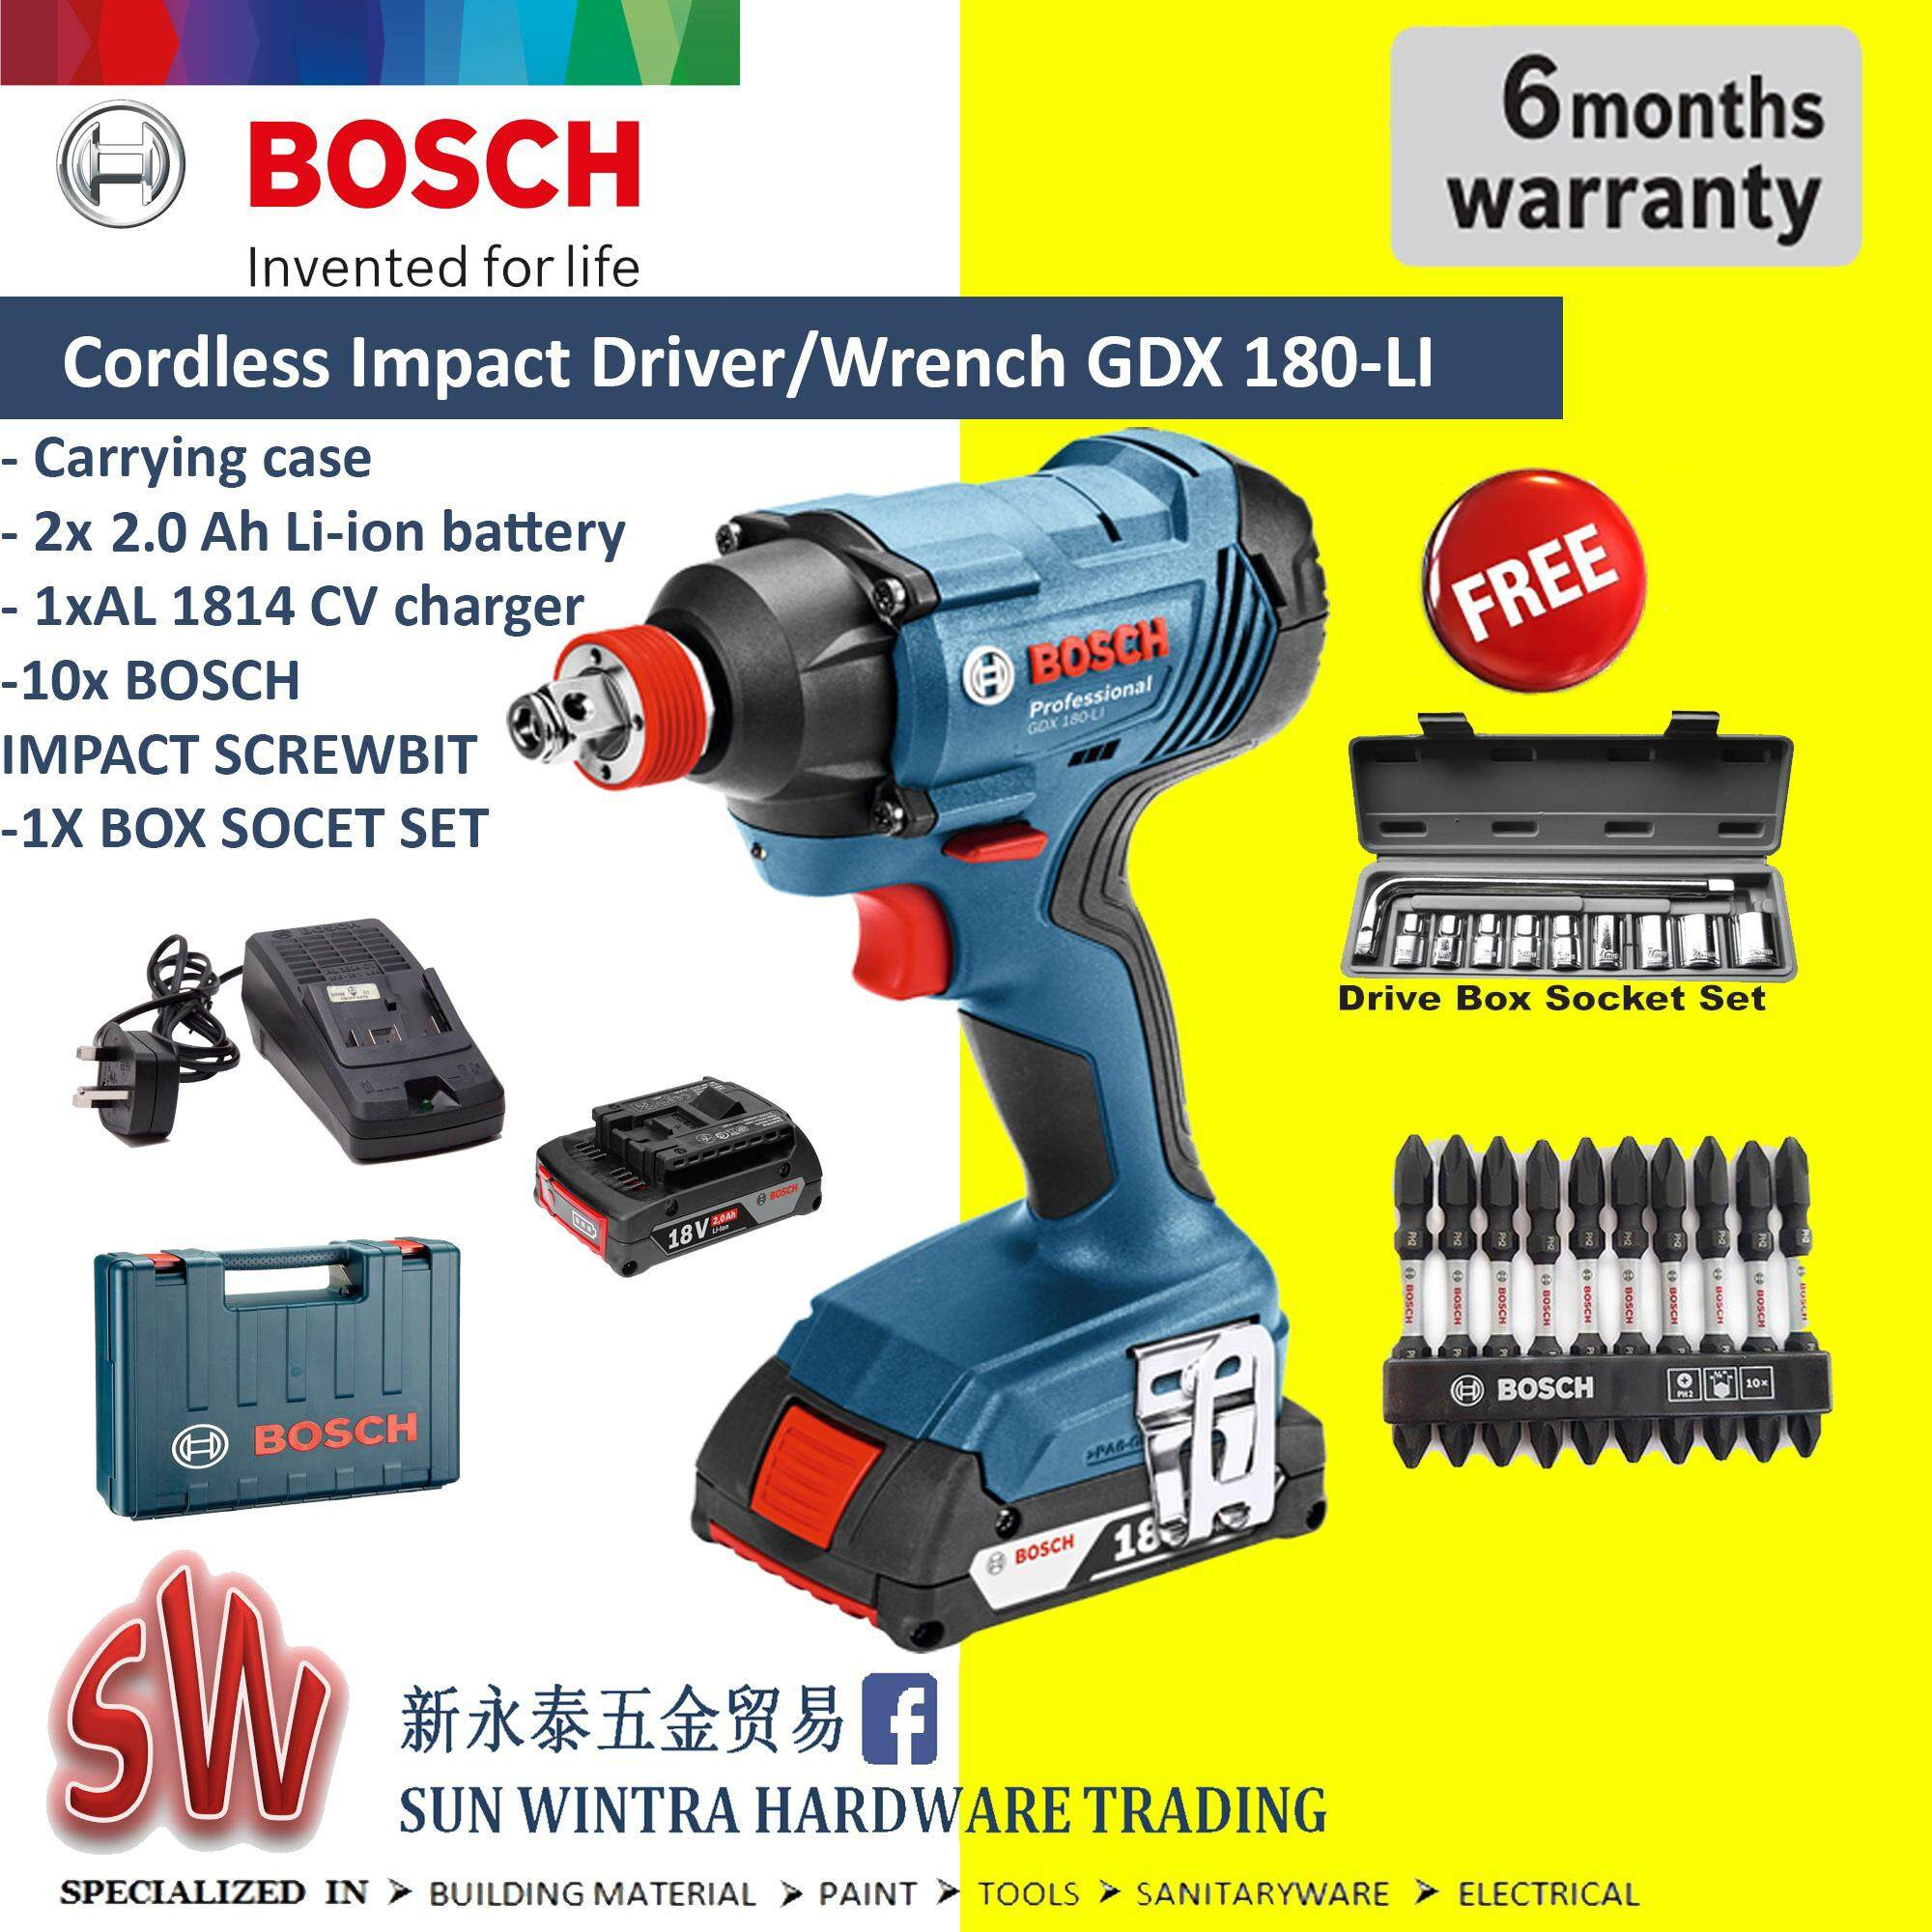 Bosch Home Drills Drivers Price In Malaysia Best New Bor Listrik 10mm Nrt Pro Gdx 180 Li Cordless Impact Driver Wrench Professional Foc 20x Accesorries